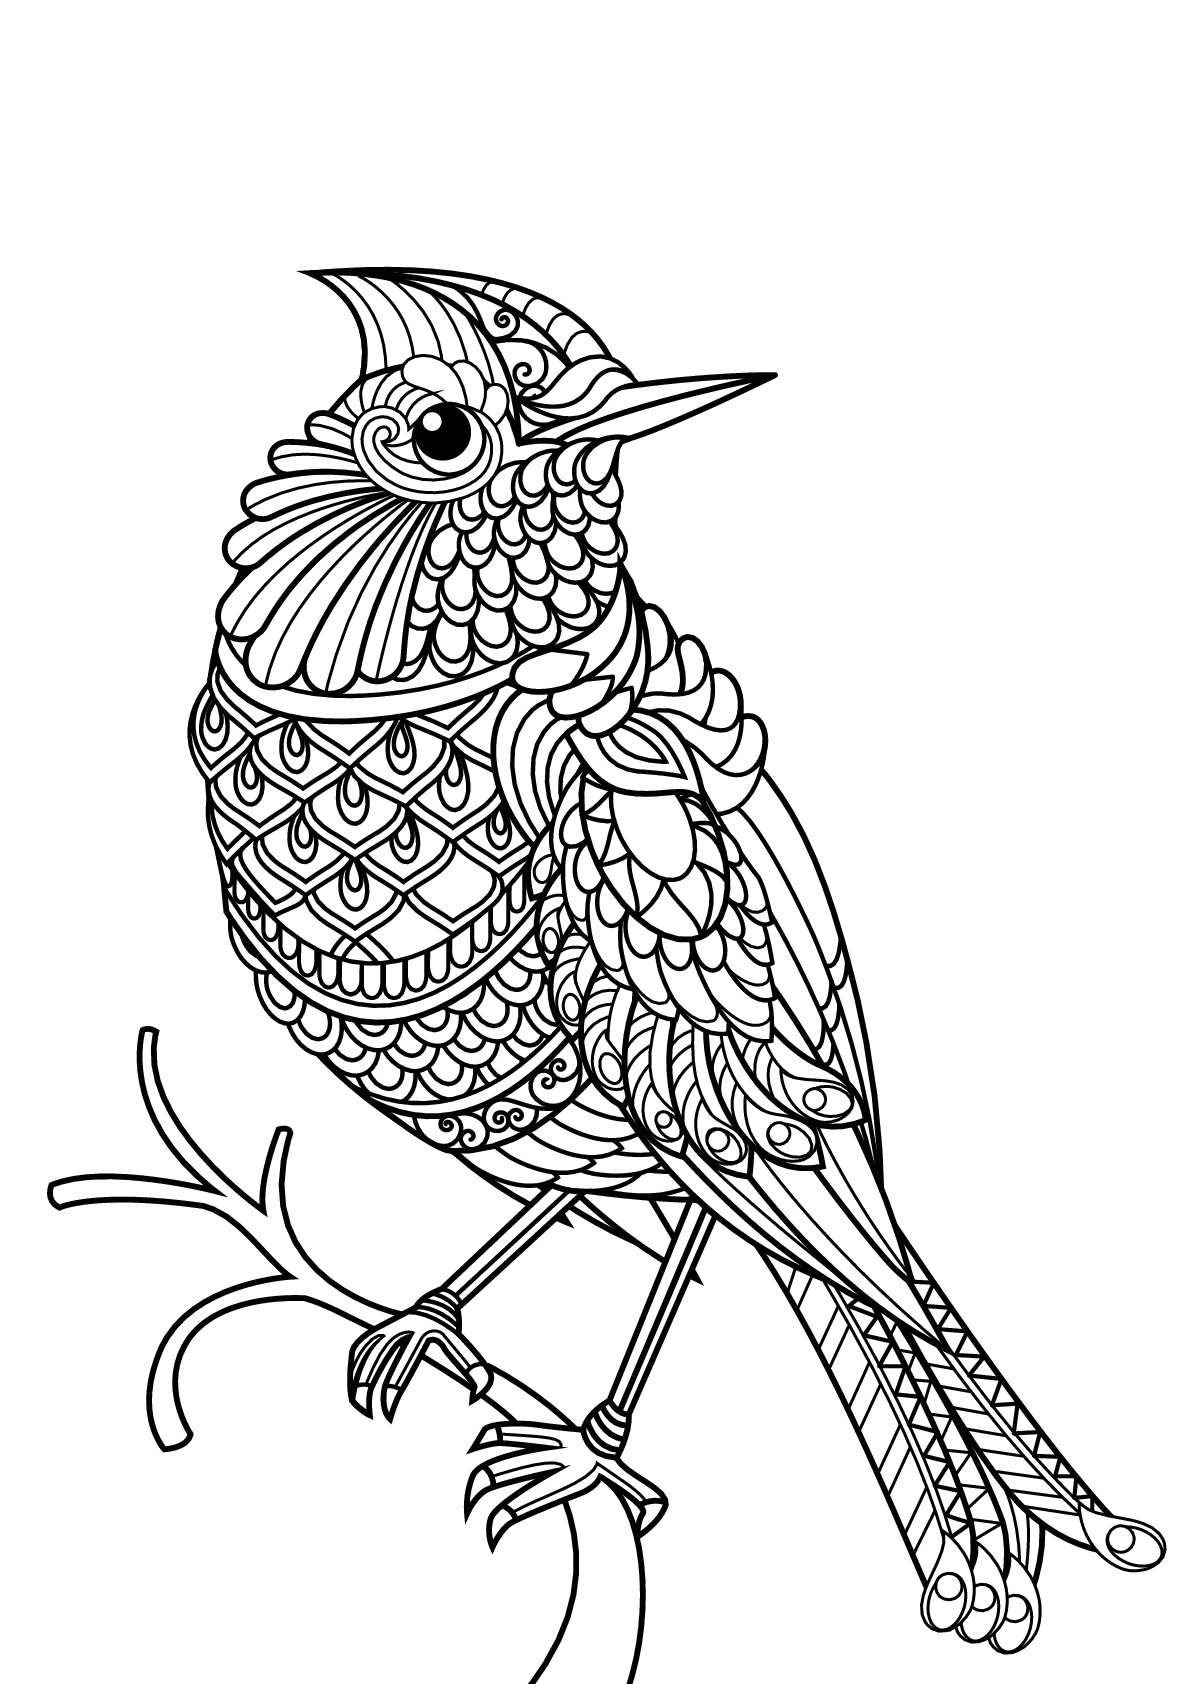 birds coloring pages cute bird coloring pages birds coloring pages